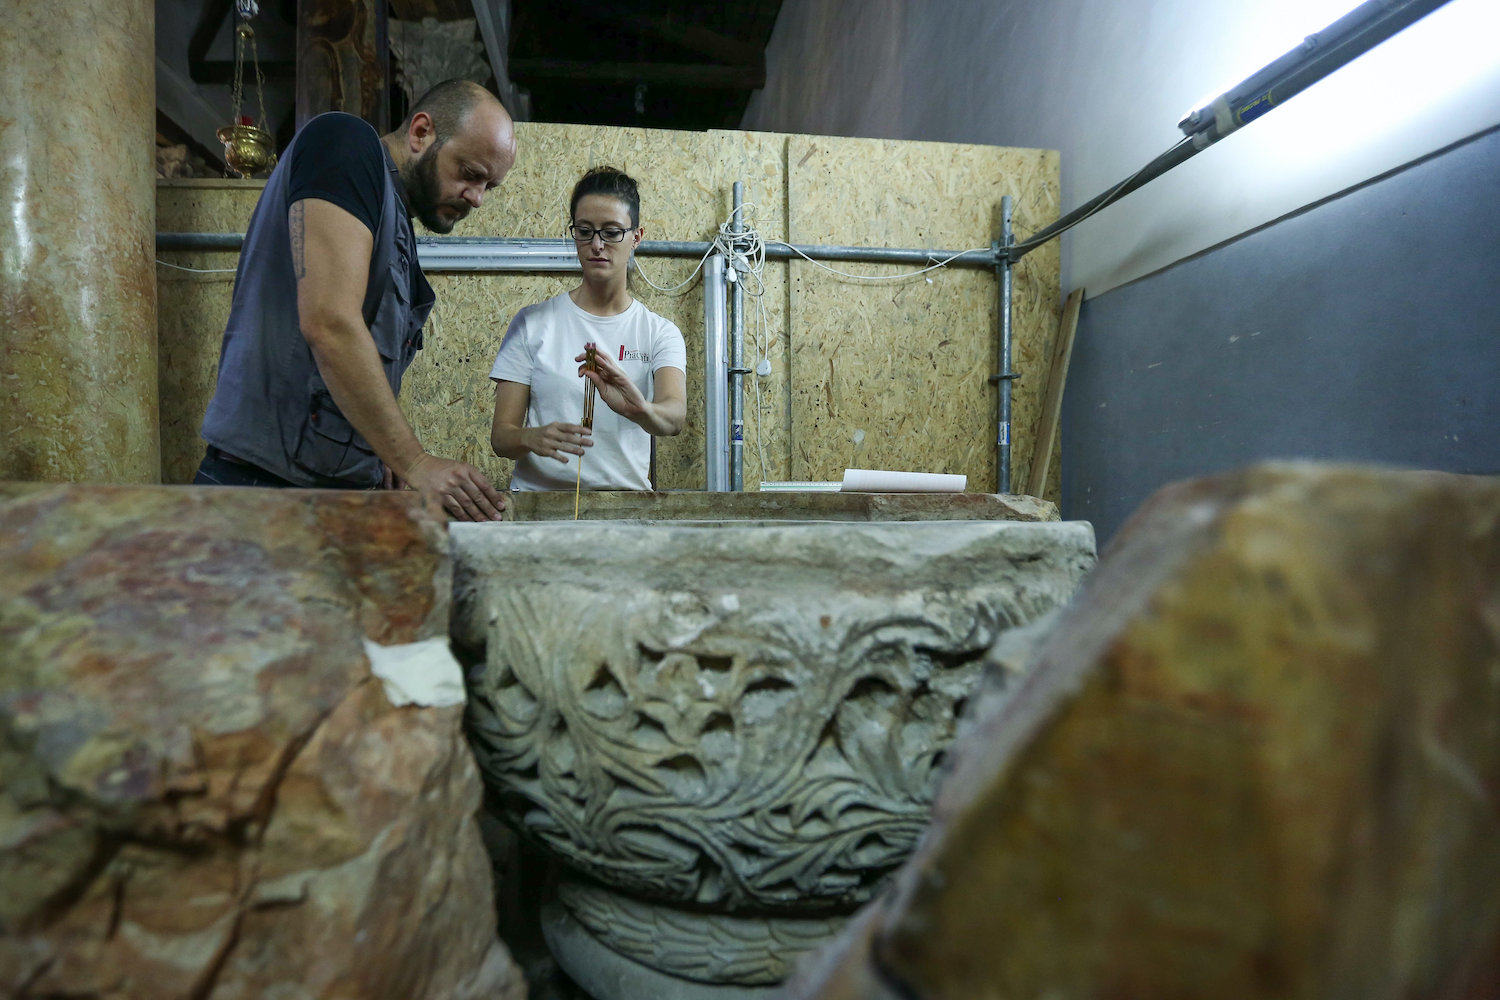 Archeologists present a Byzantine baptism font from the 6th century that was discovered during restoration work at the Church of the Nativity, in the occupied West Bank city of Bethlehem, June 22, 2019. (Wisam Hashlamoun/Flash90)